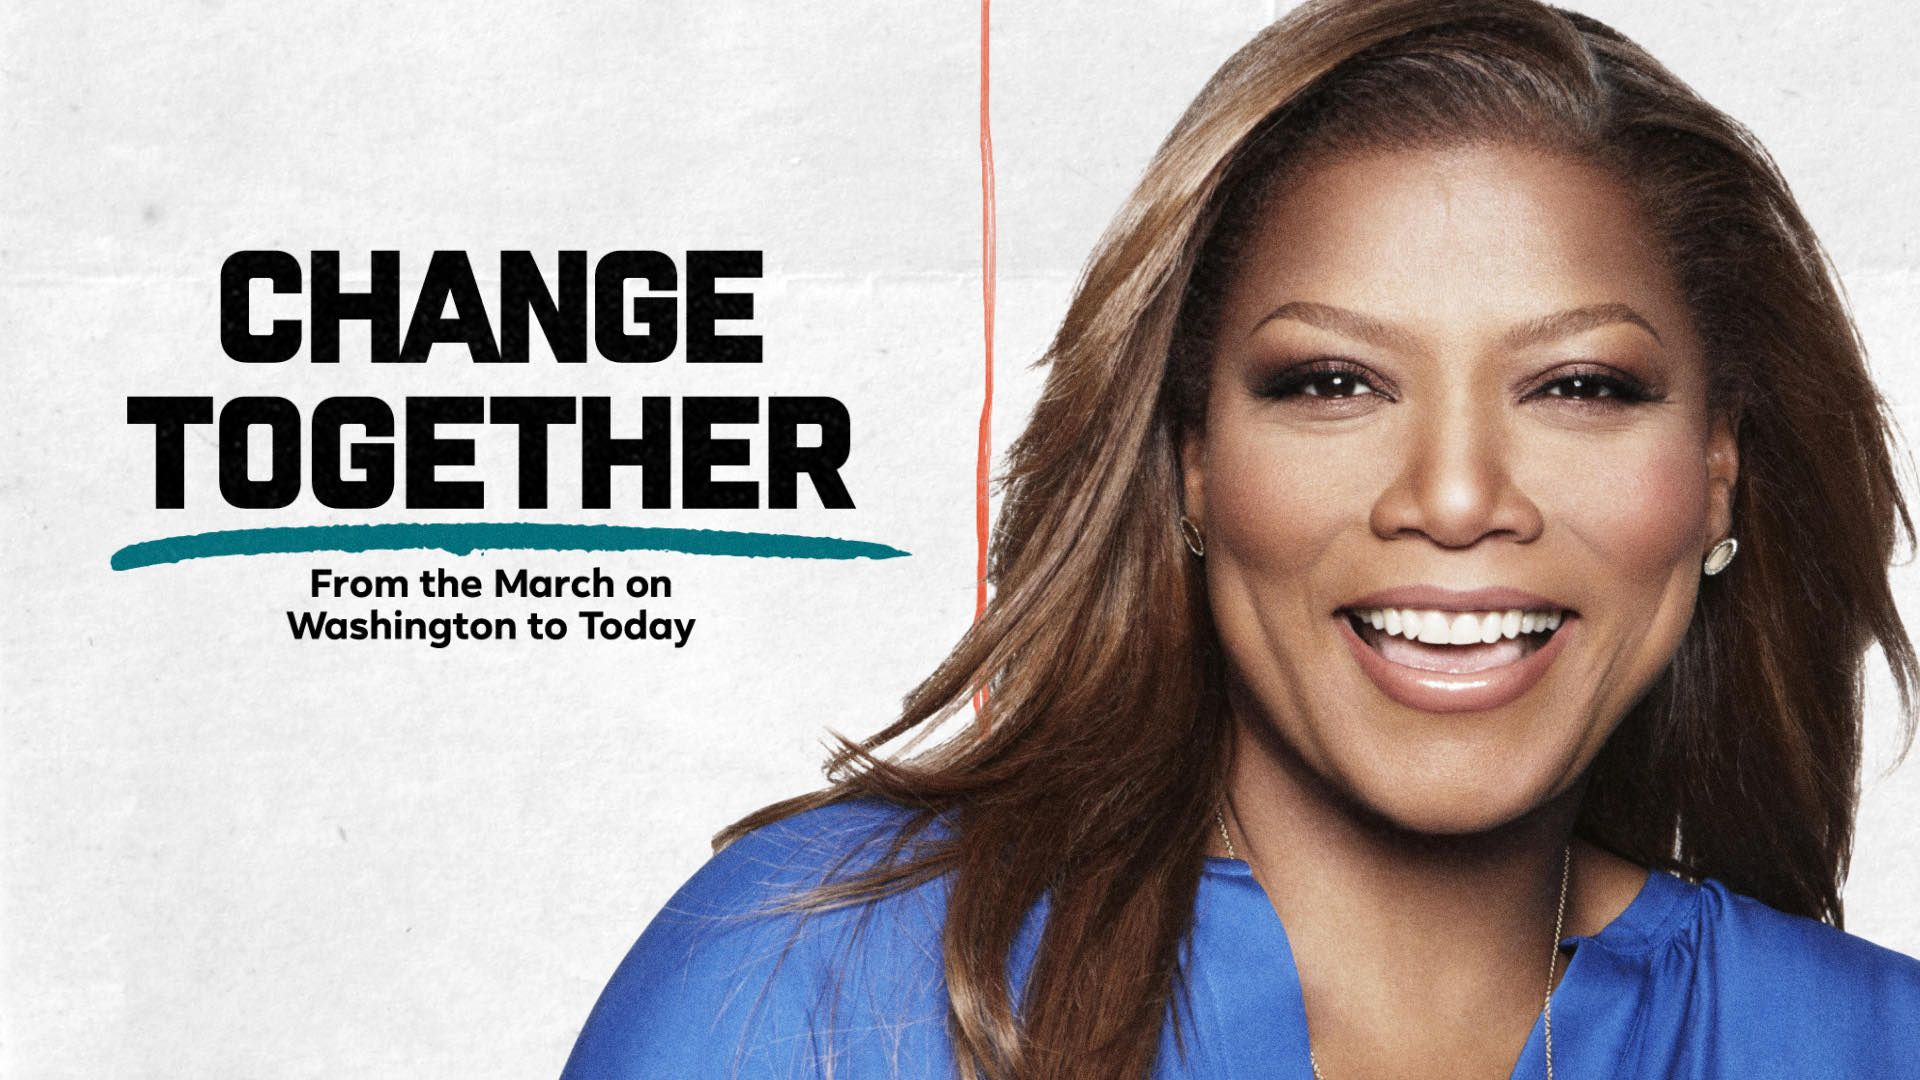 Change Together: From the March on Washington to Today hosted by Queen Latifah